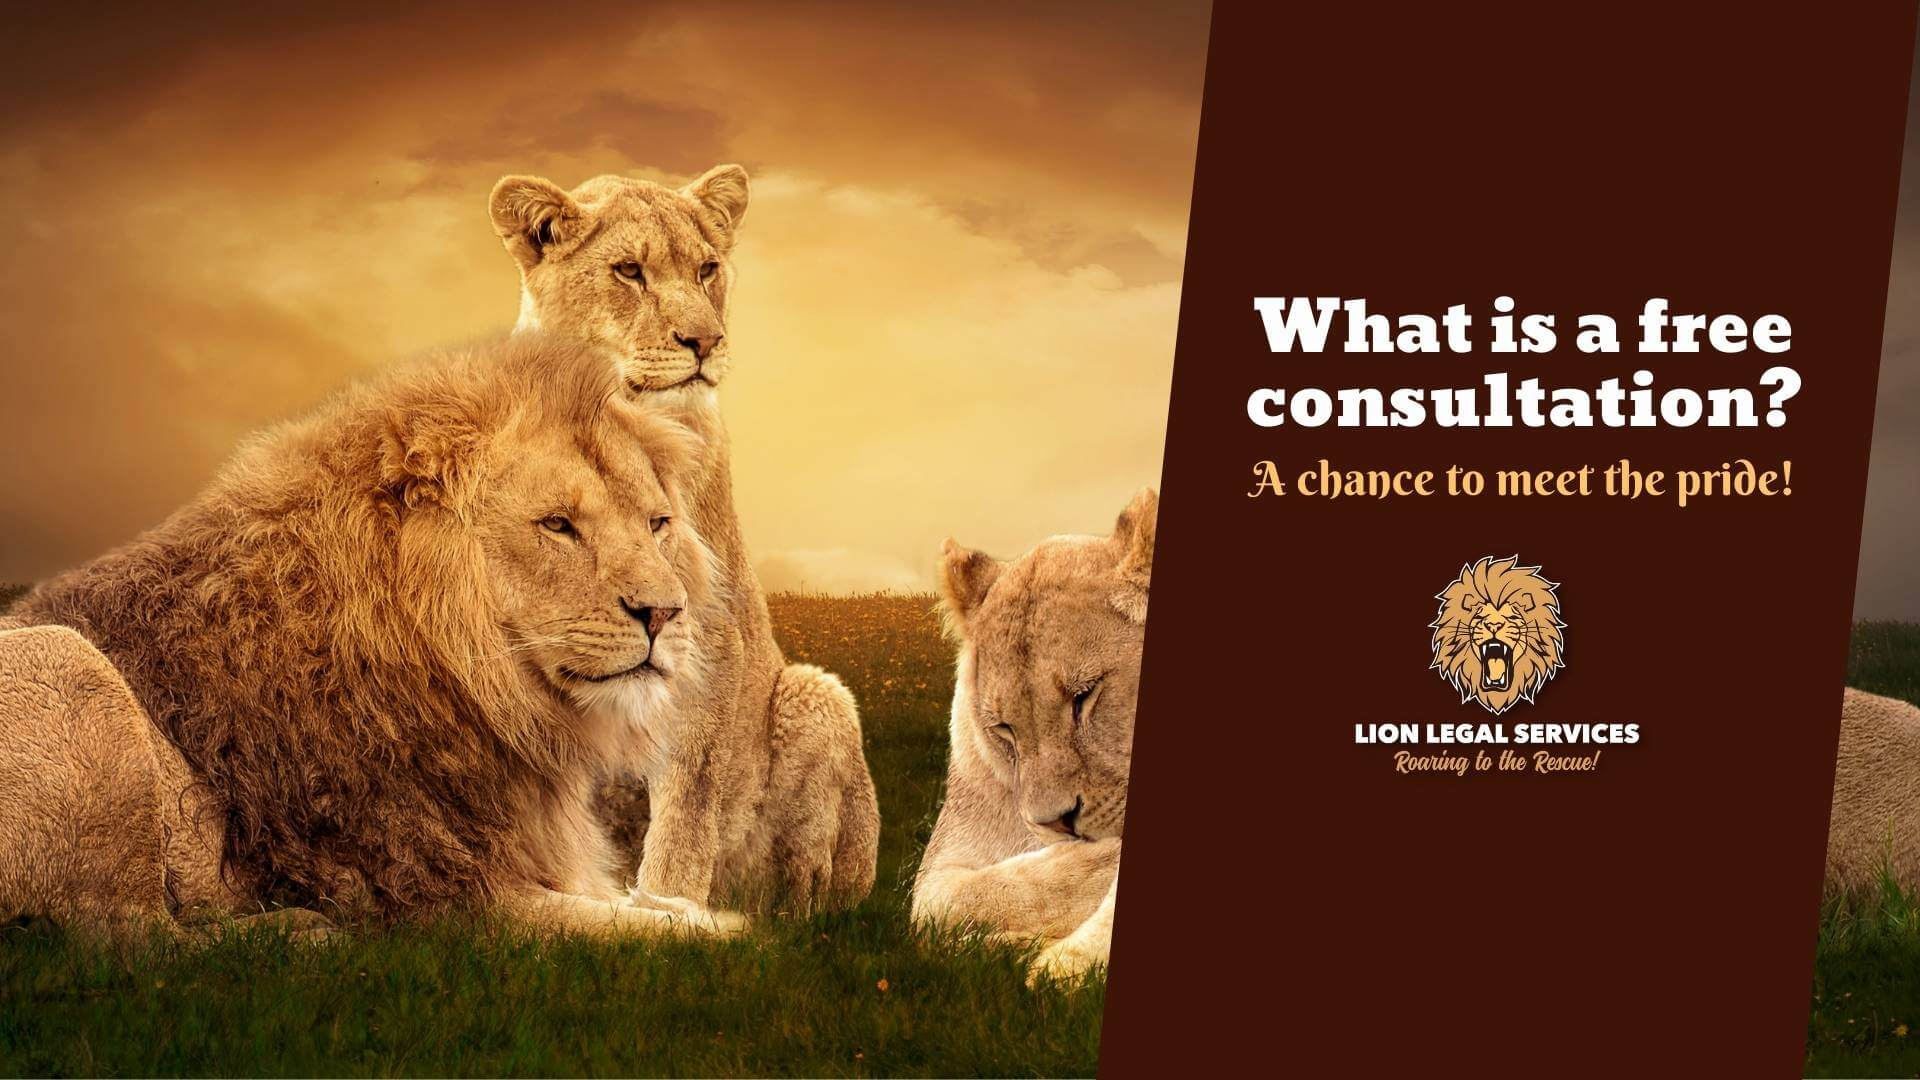 """Photo of a pride of lions with caption """"What is a free consultation?"""""""